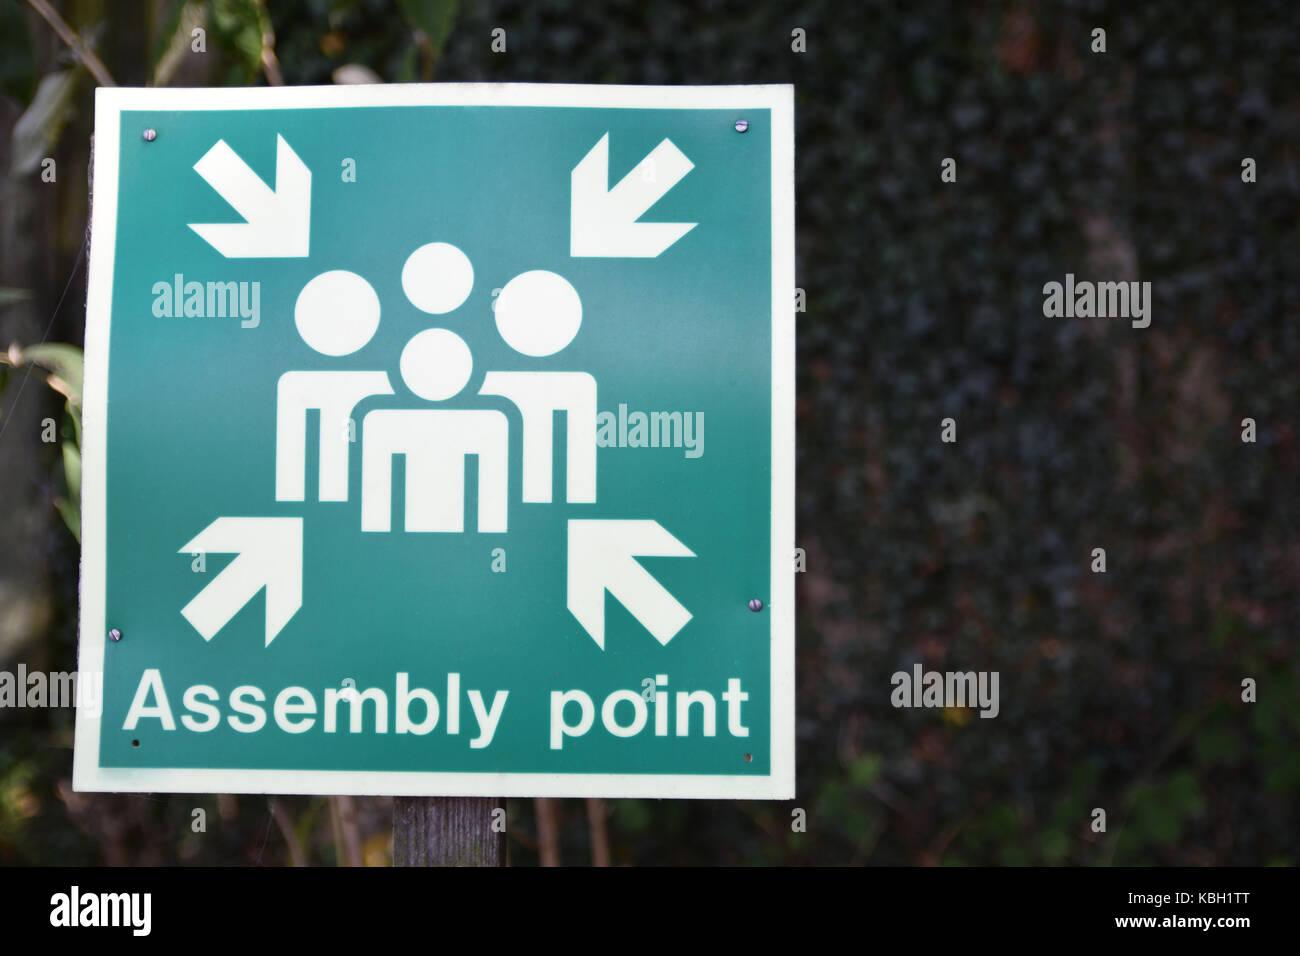 old green emergency assembly point sign on a post with foliage in the background - Stock Image